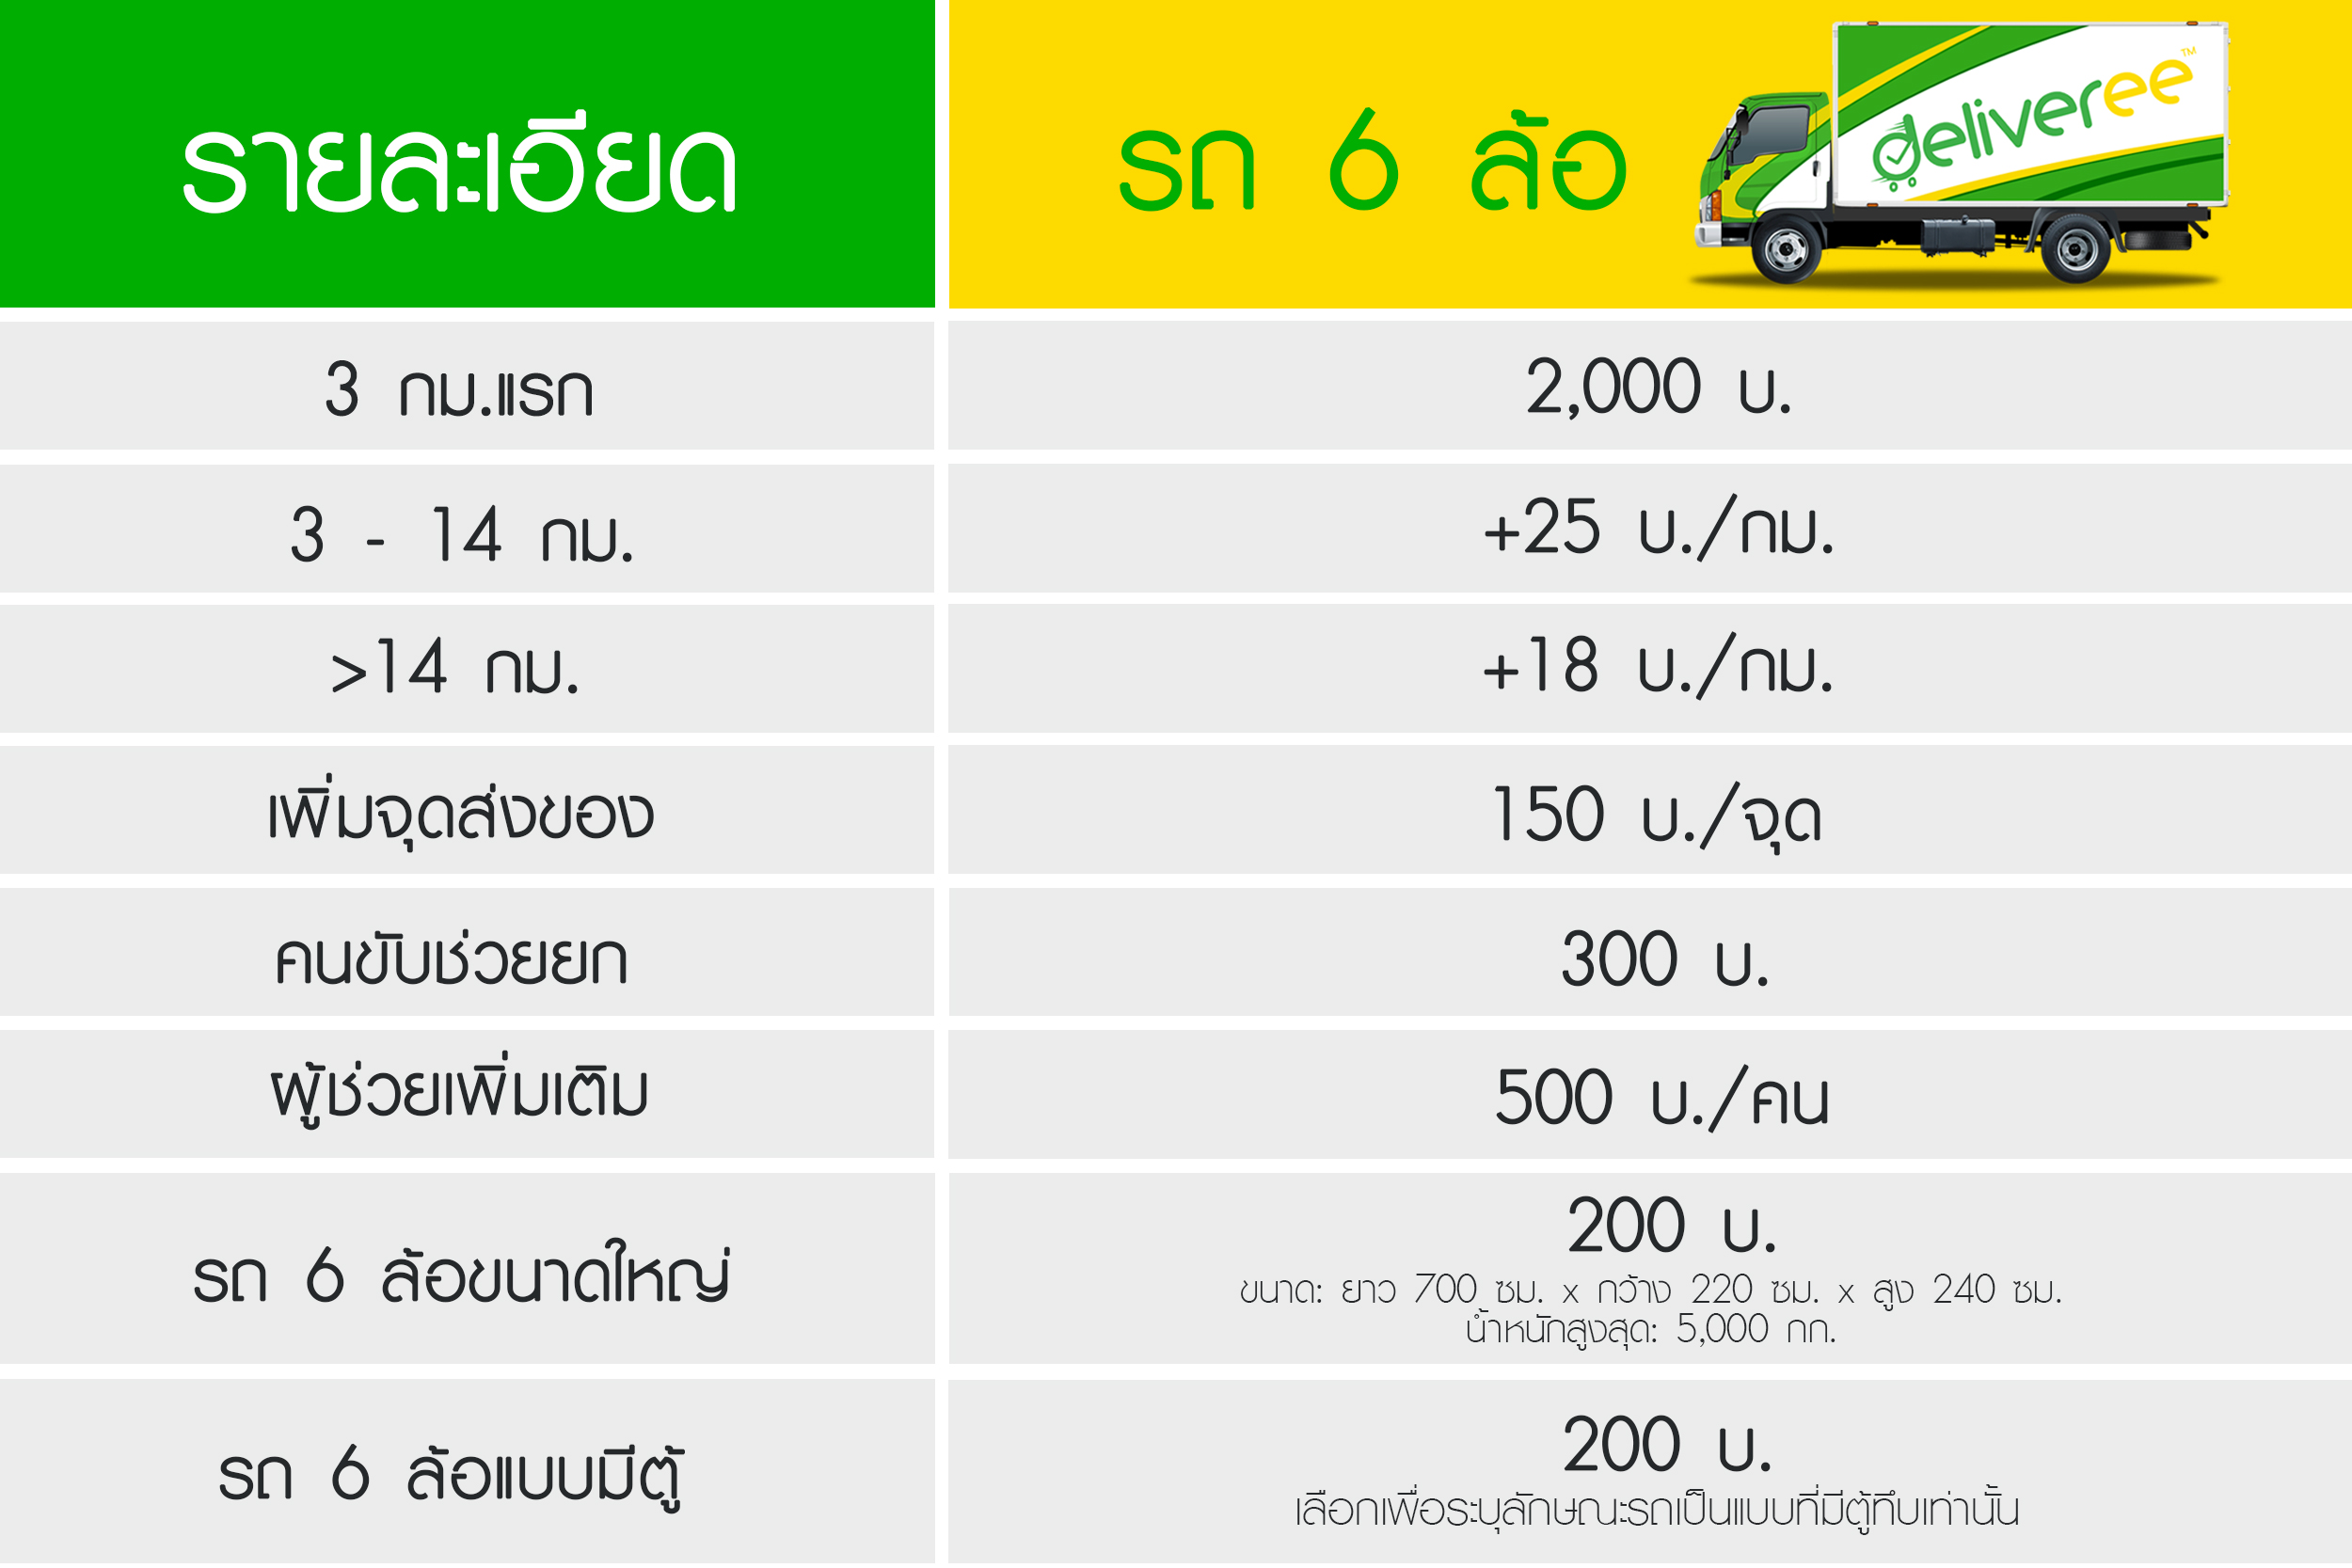 6-Wheel Truck Delivery Rates - Deliveree TH